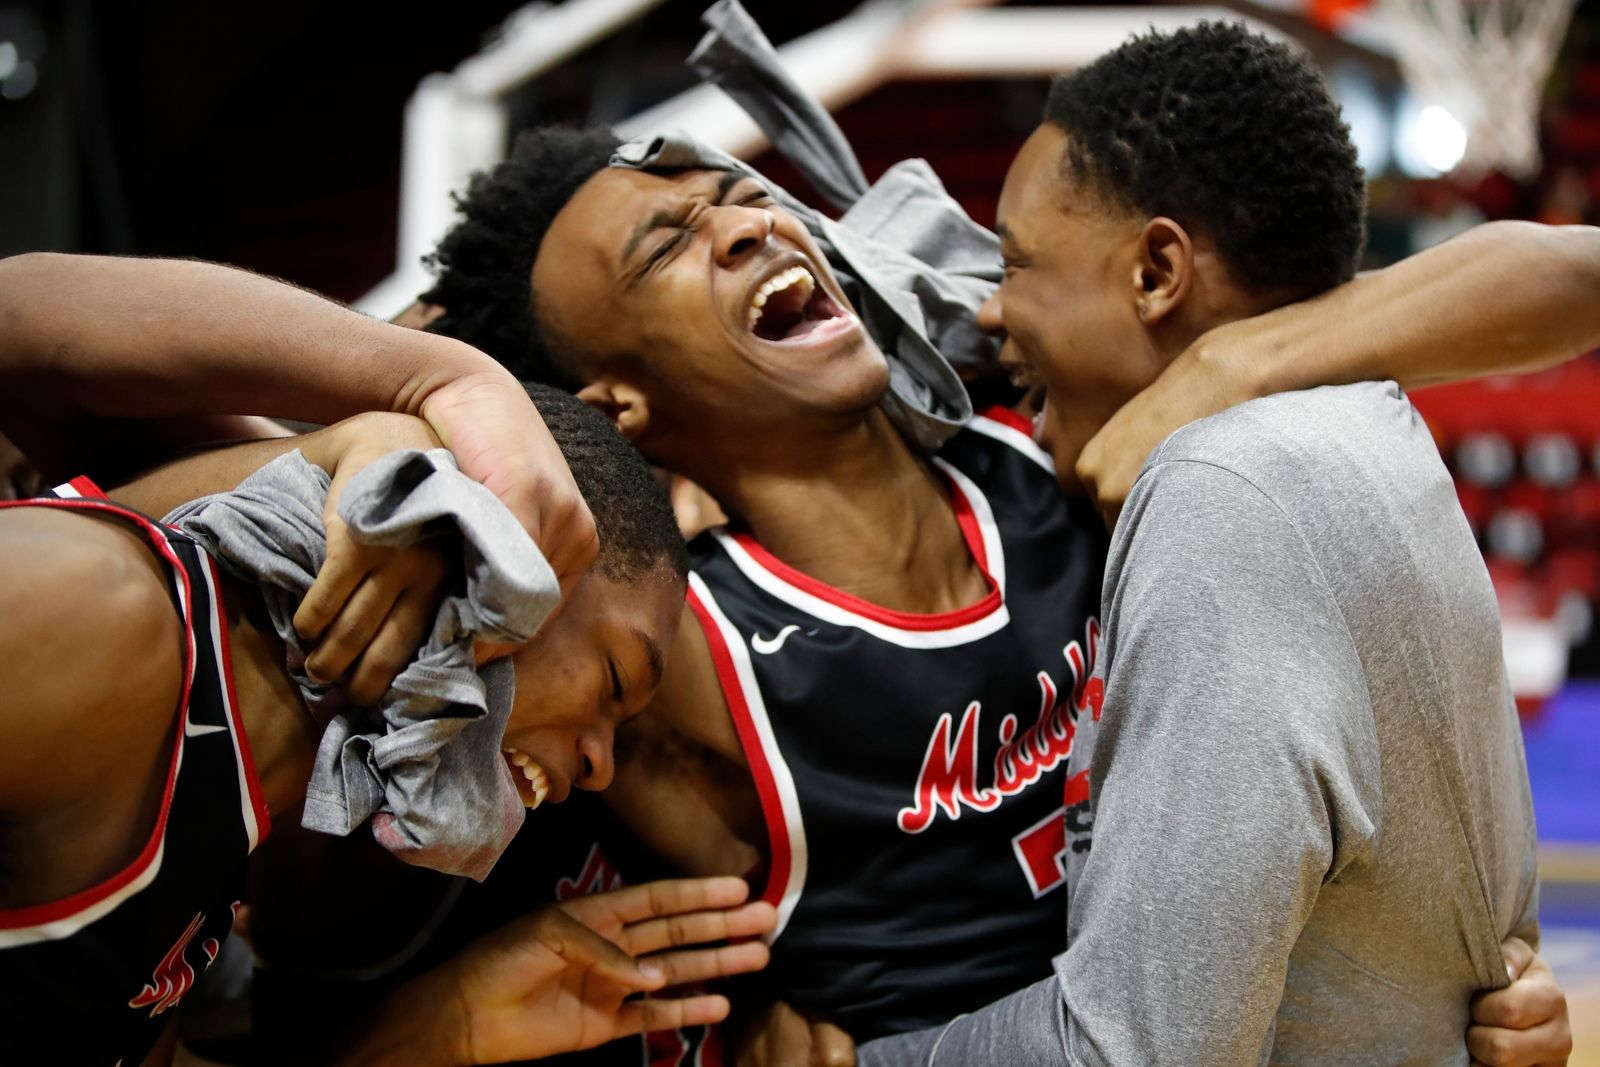 Middle Early College player Keith Brown celebrates a victory over Lake George in the New York State Class C semifinal at the Floyd L. Maines Veterans Memorial Arena in Binghamton on Saturday, March 16, 2019.